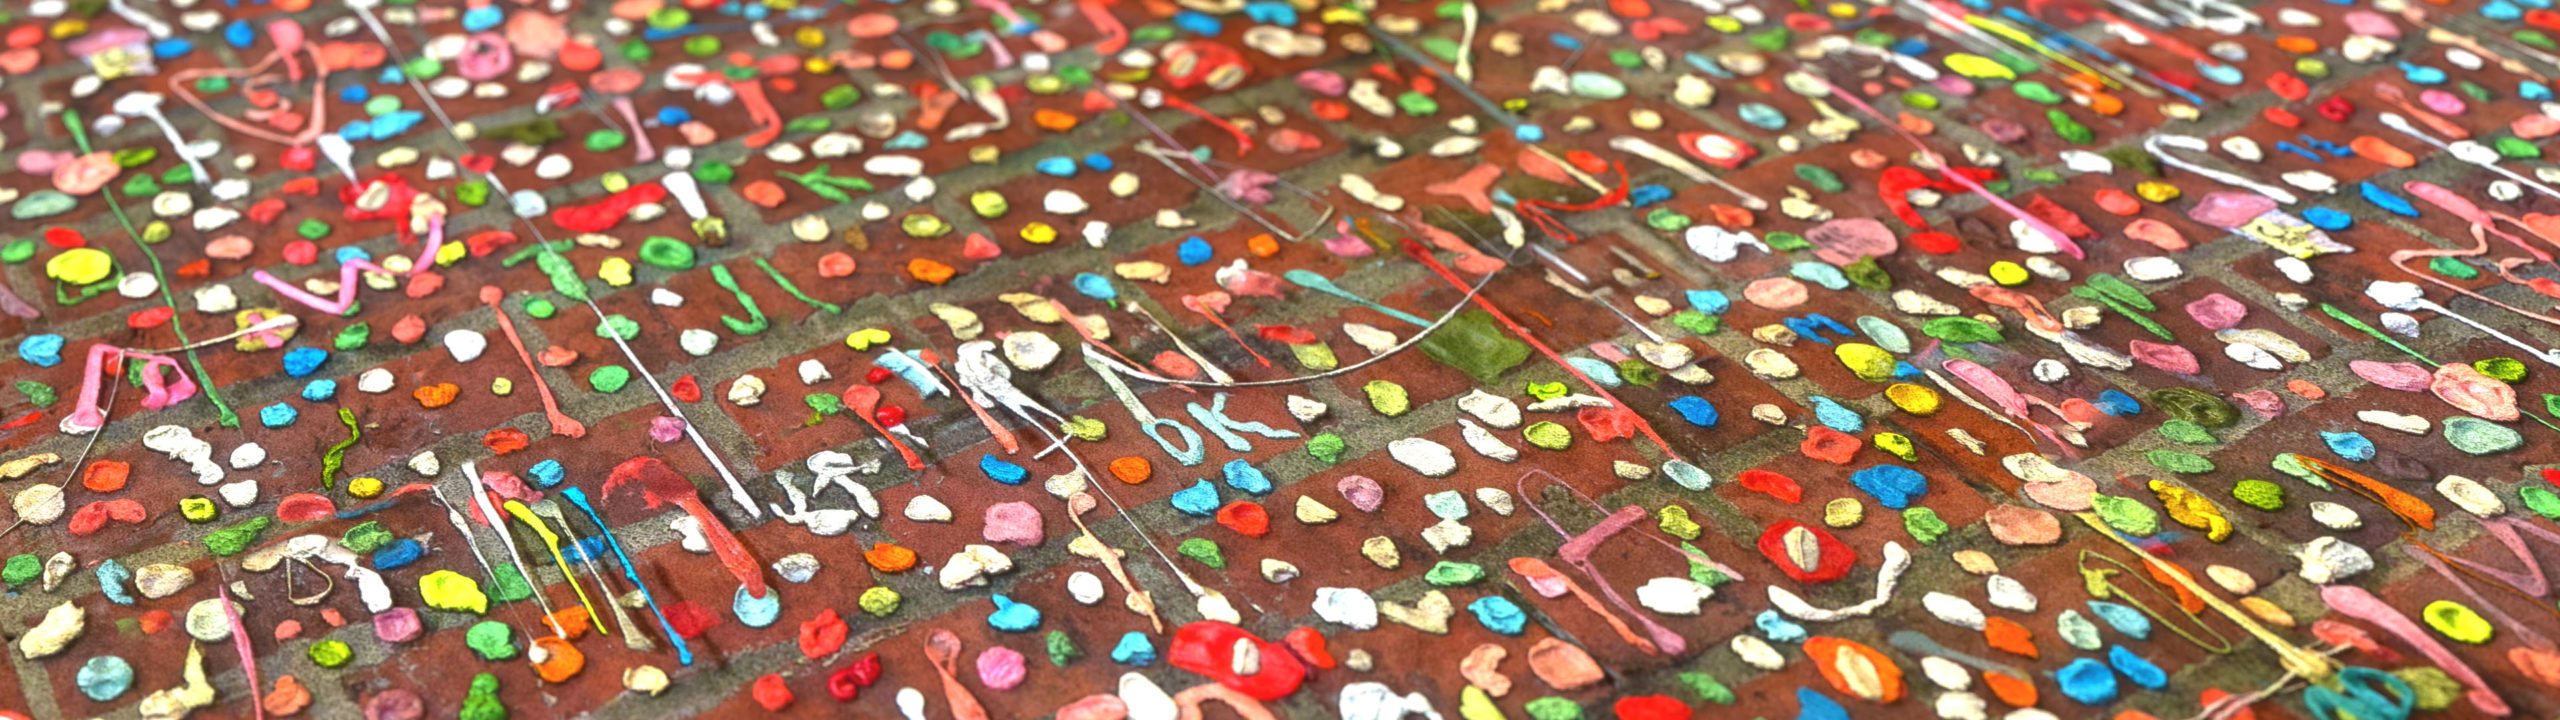 gum wall preview render